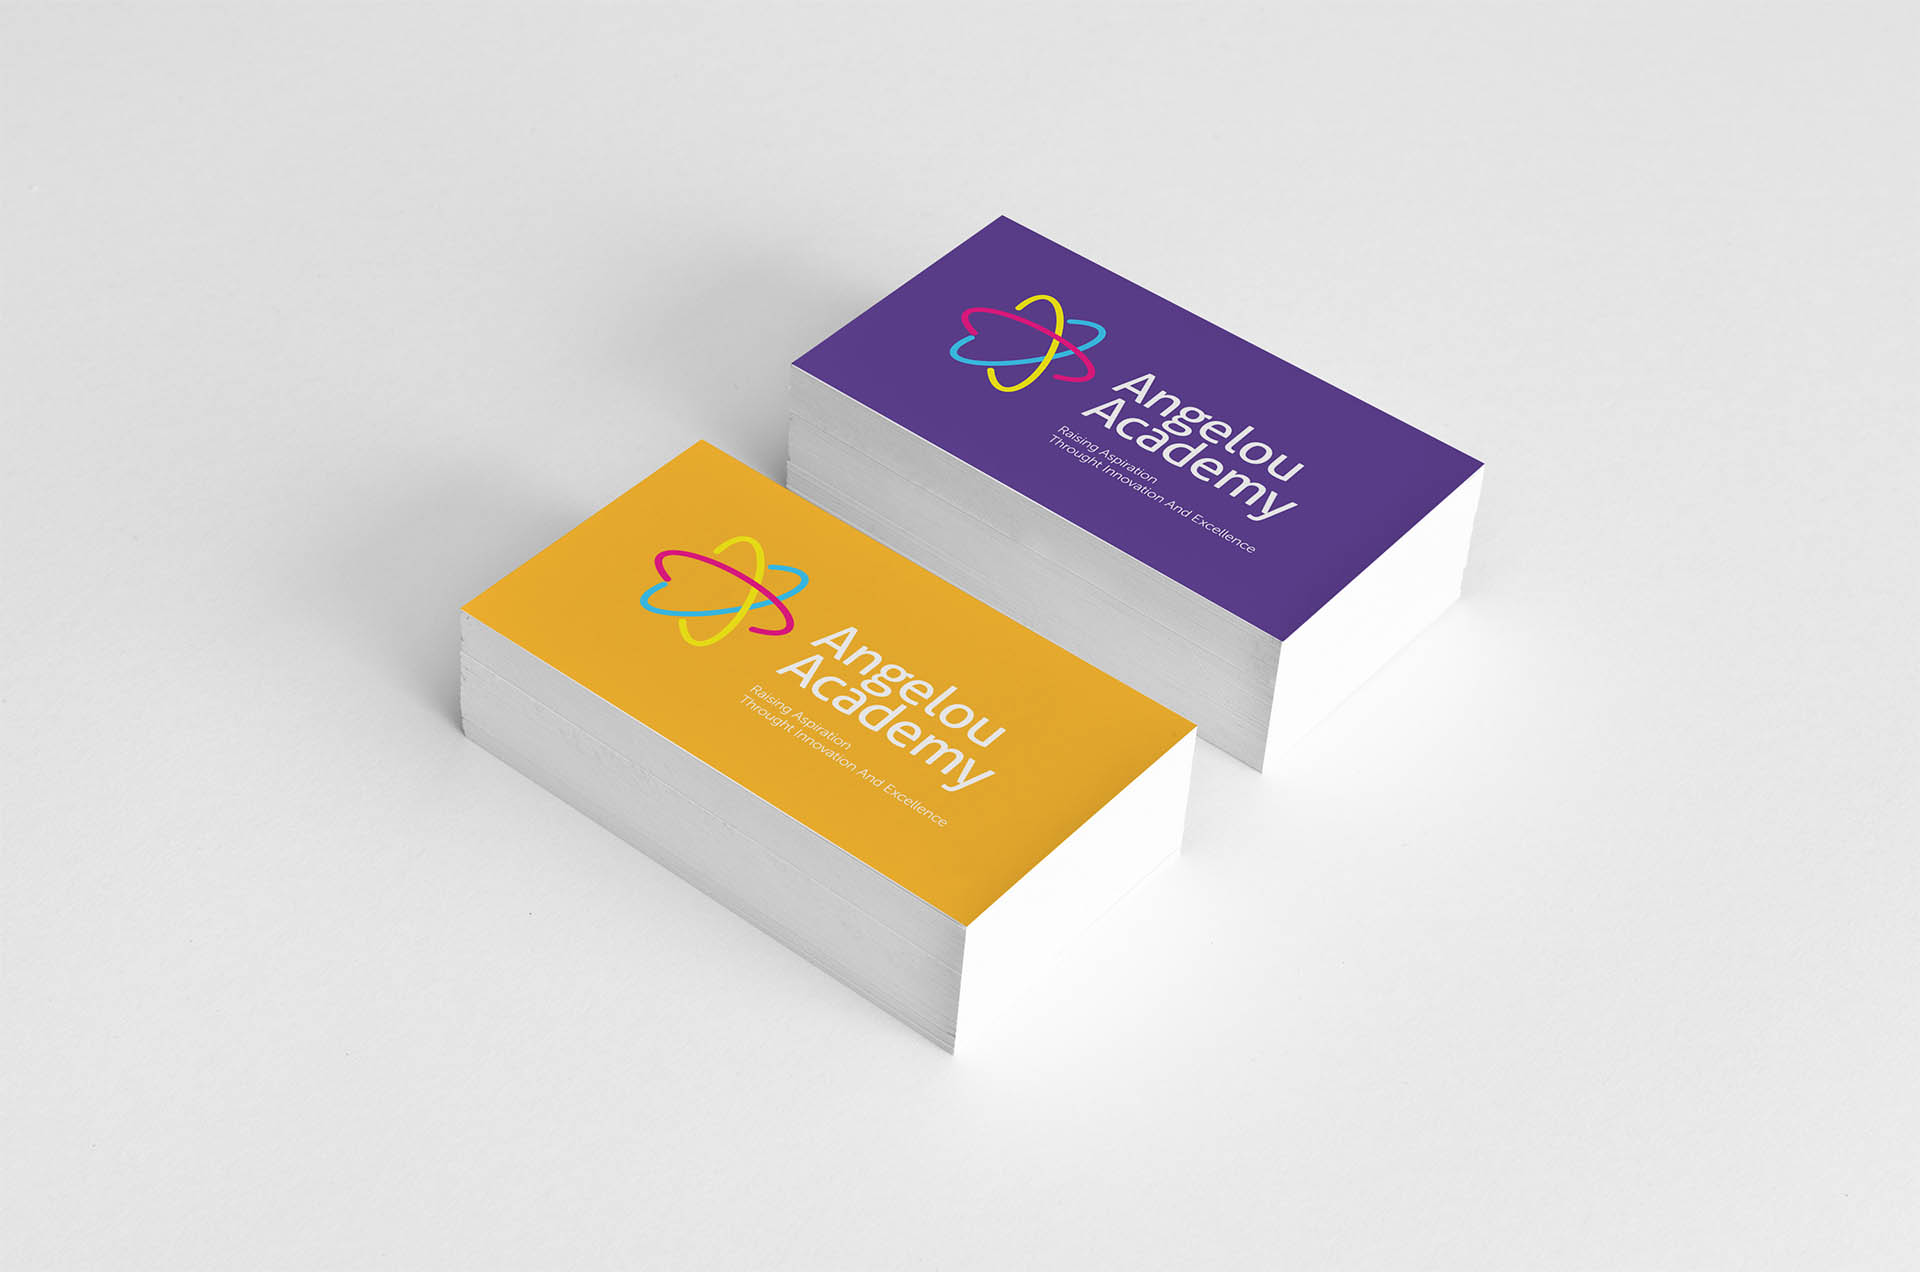 angelou academy business cards